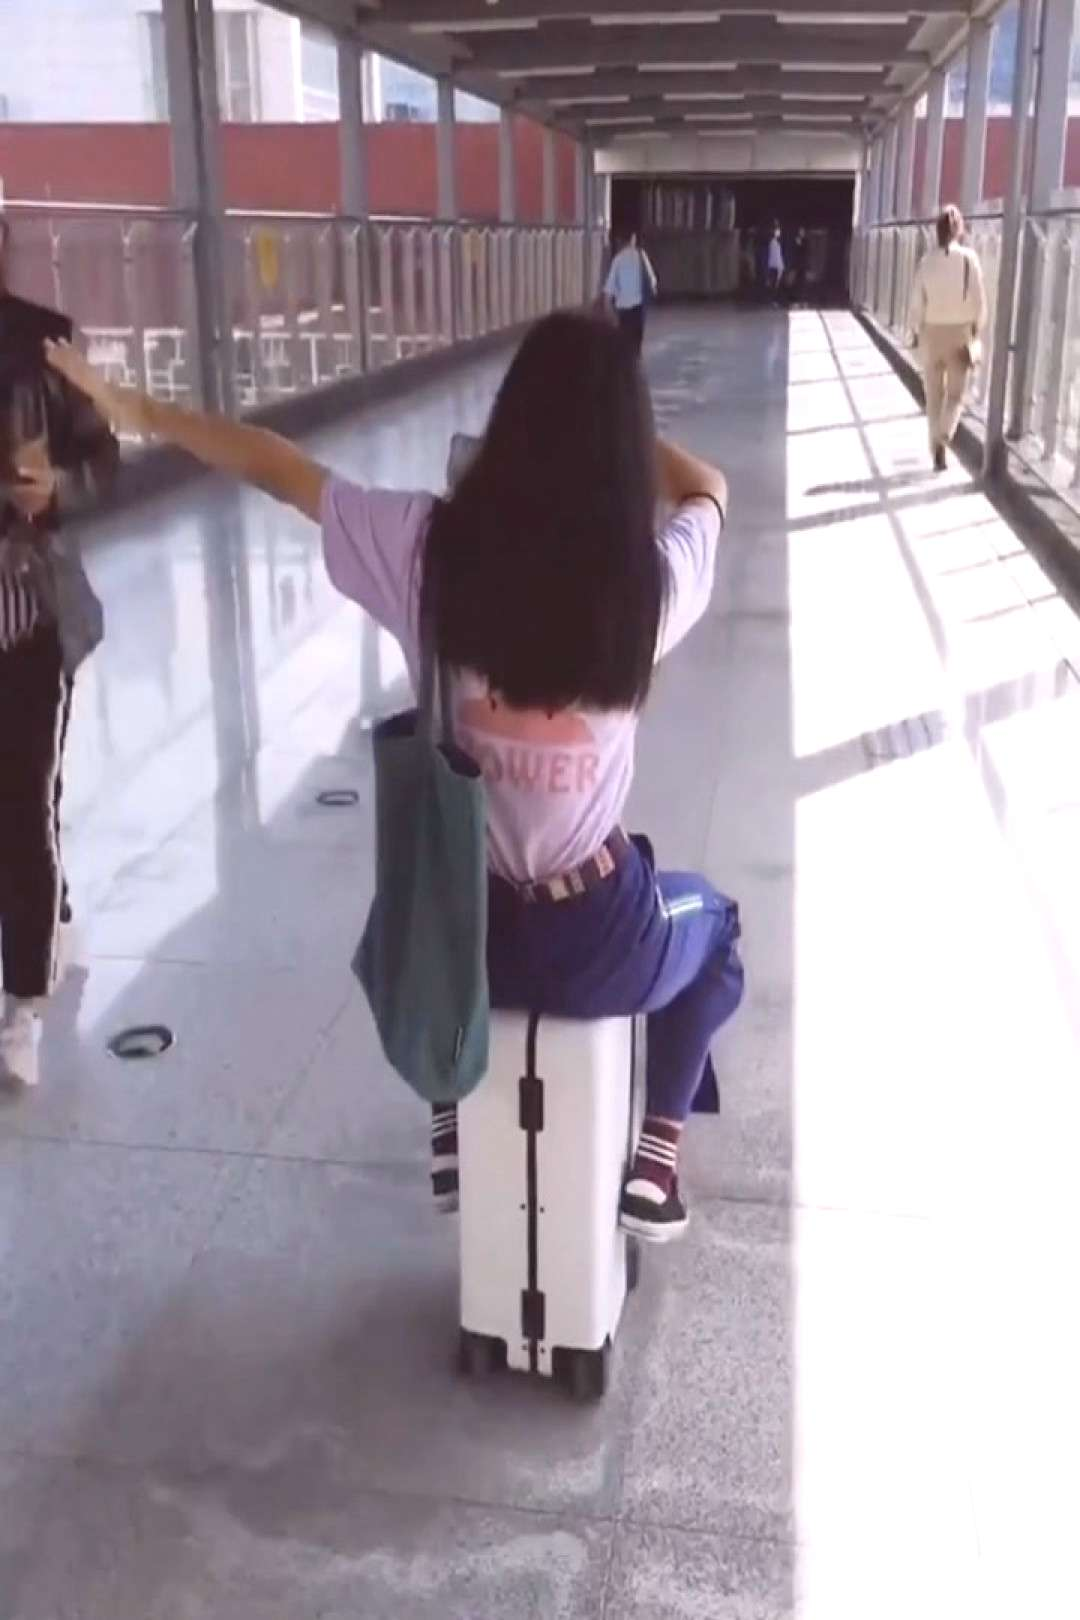 Dont worry about losing your luggage anymore. No one can steal y